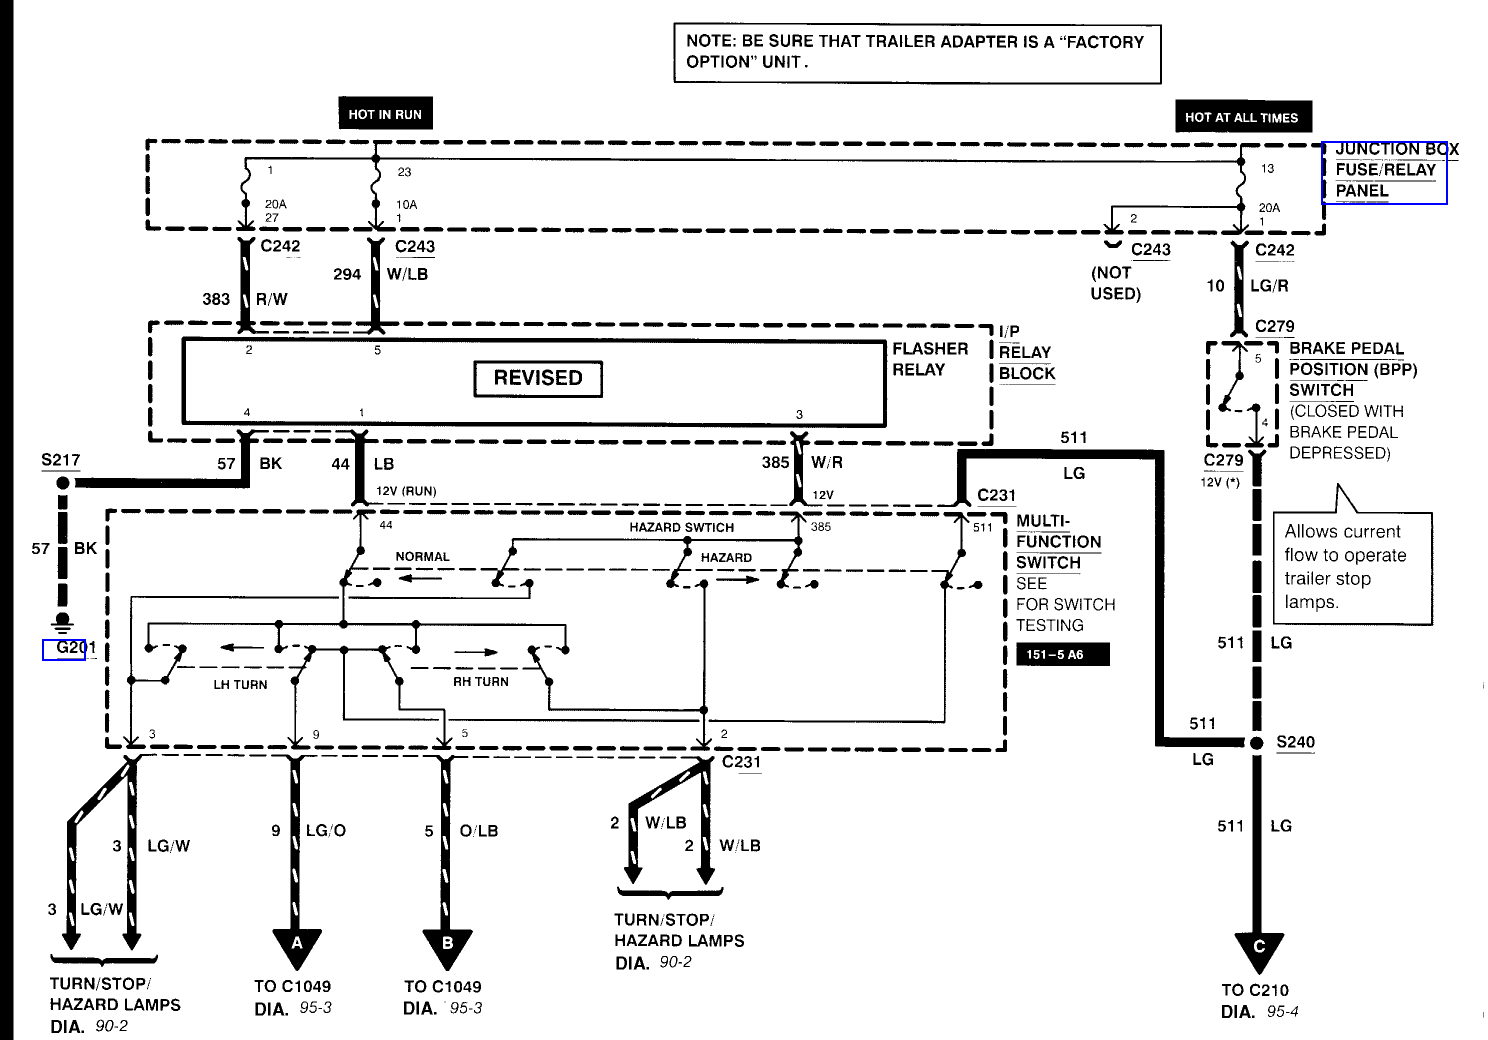 1999 ford f250 trailer wiring diagram Collection-Ford F350 Trailer Wiring Harness Diagram Collection ford f250 wire harness wiring diagram ford parts 20-p